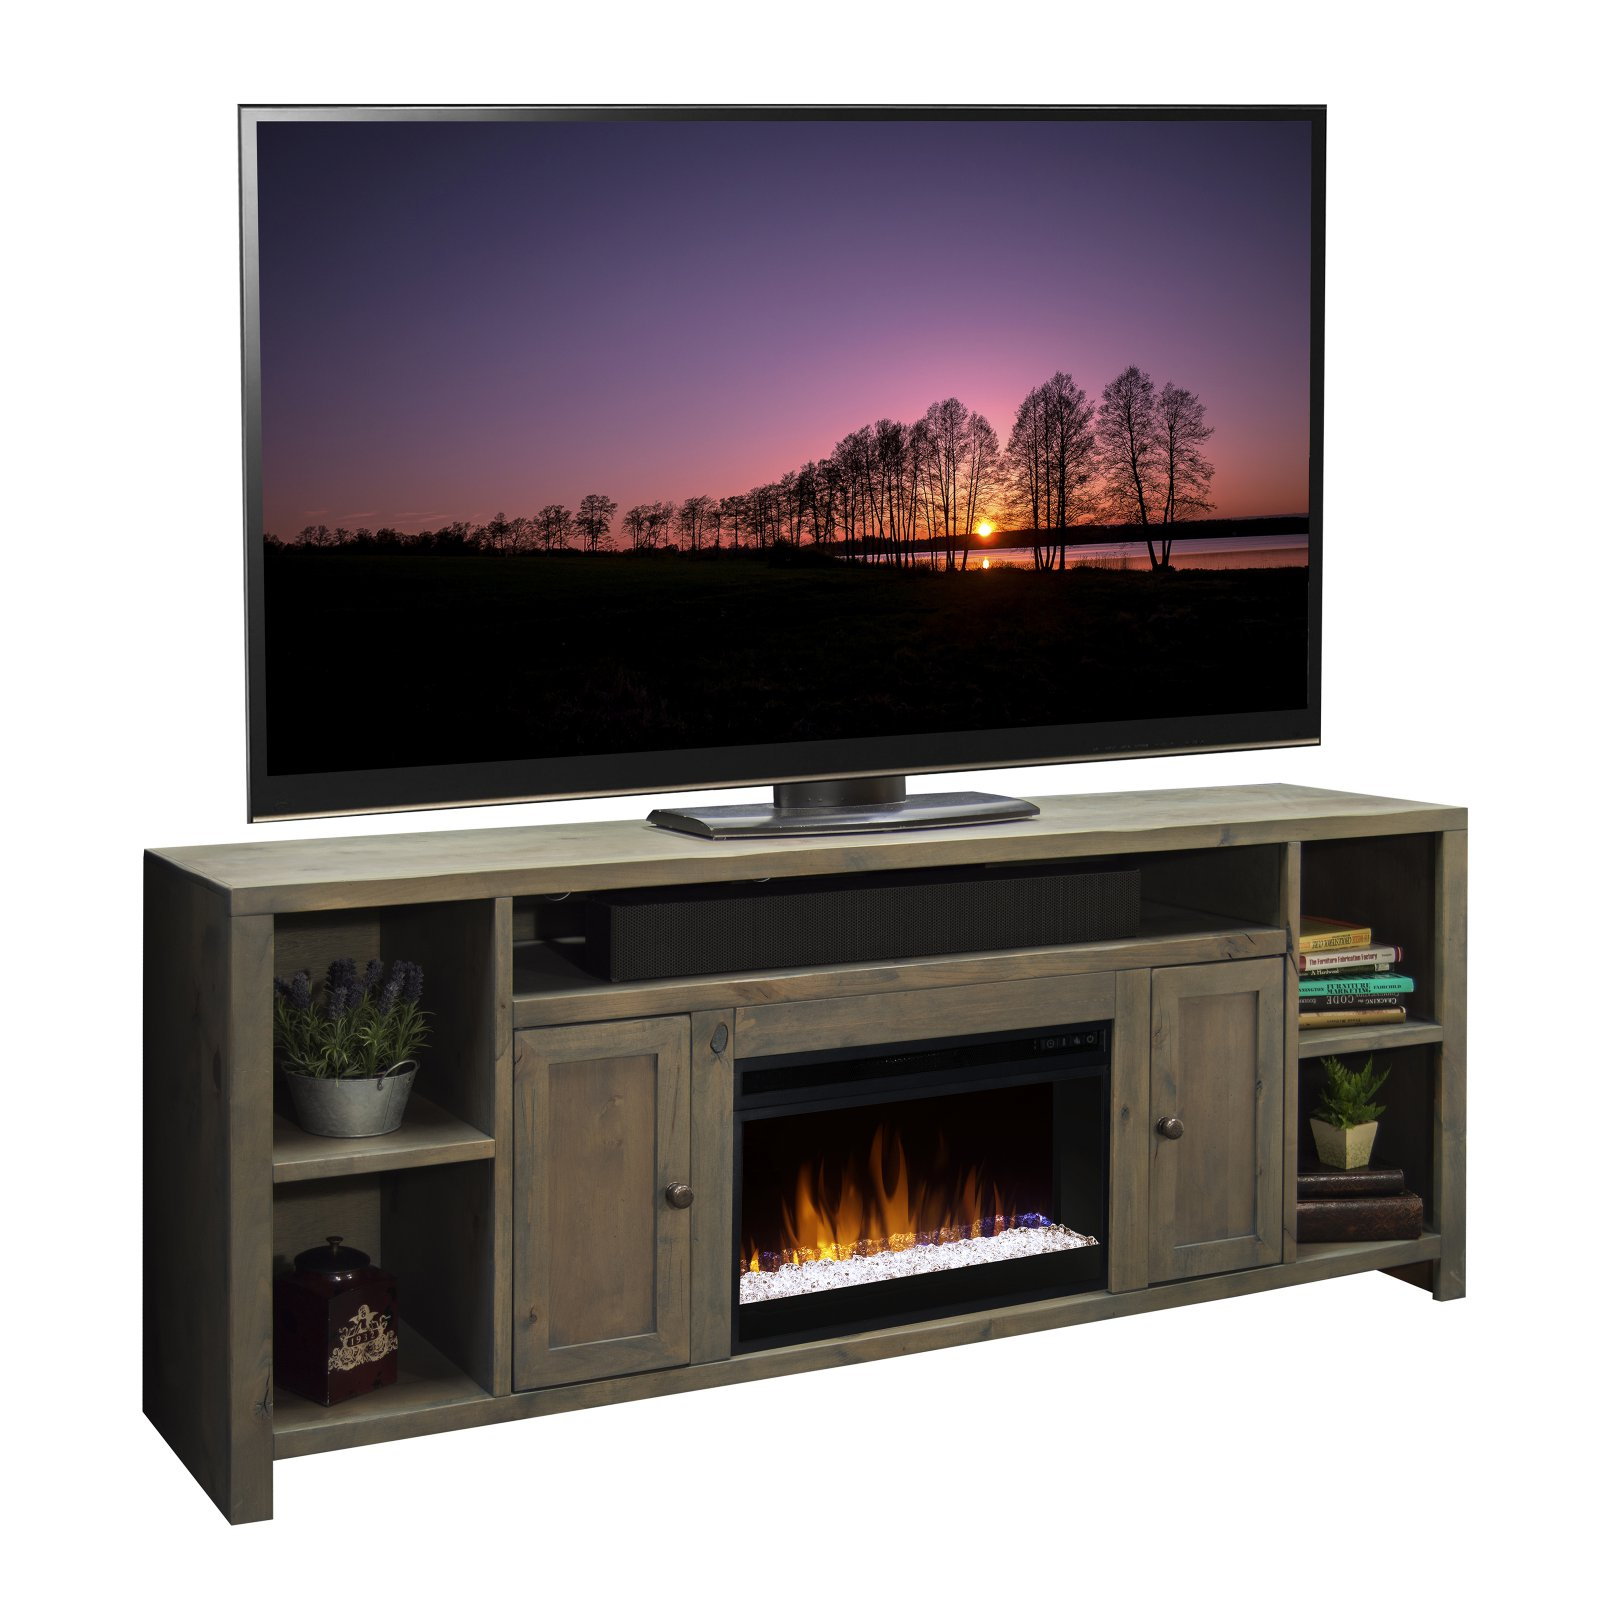 Legends Furniture Joshua Creek Electric Media Fireplace